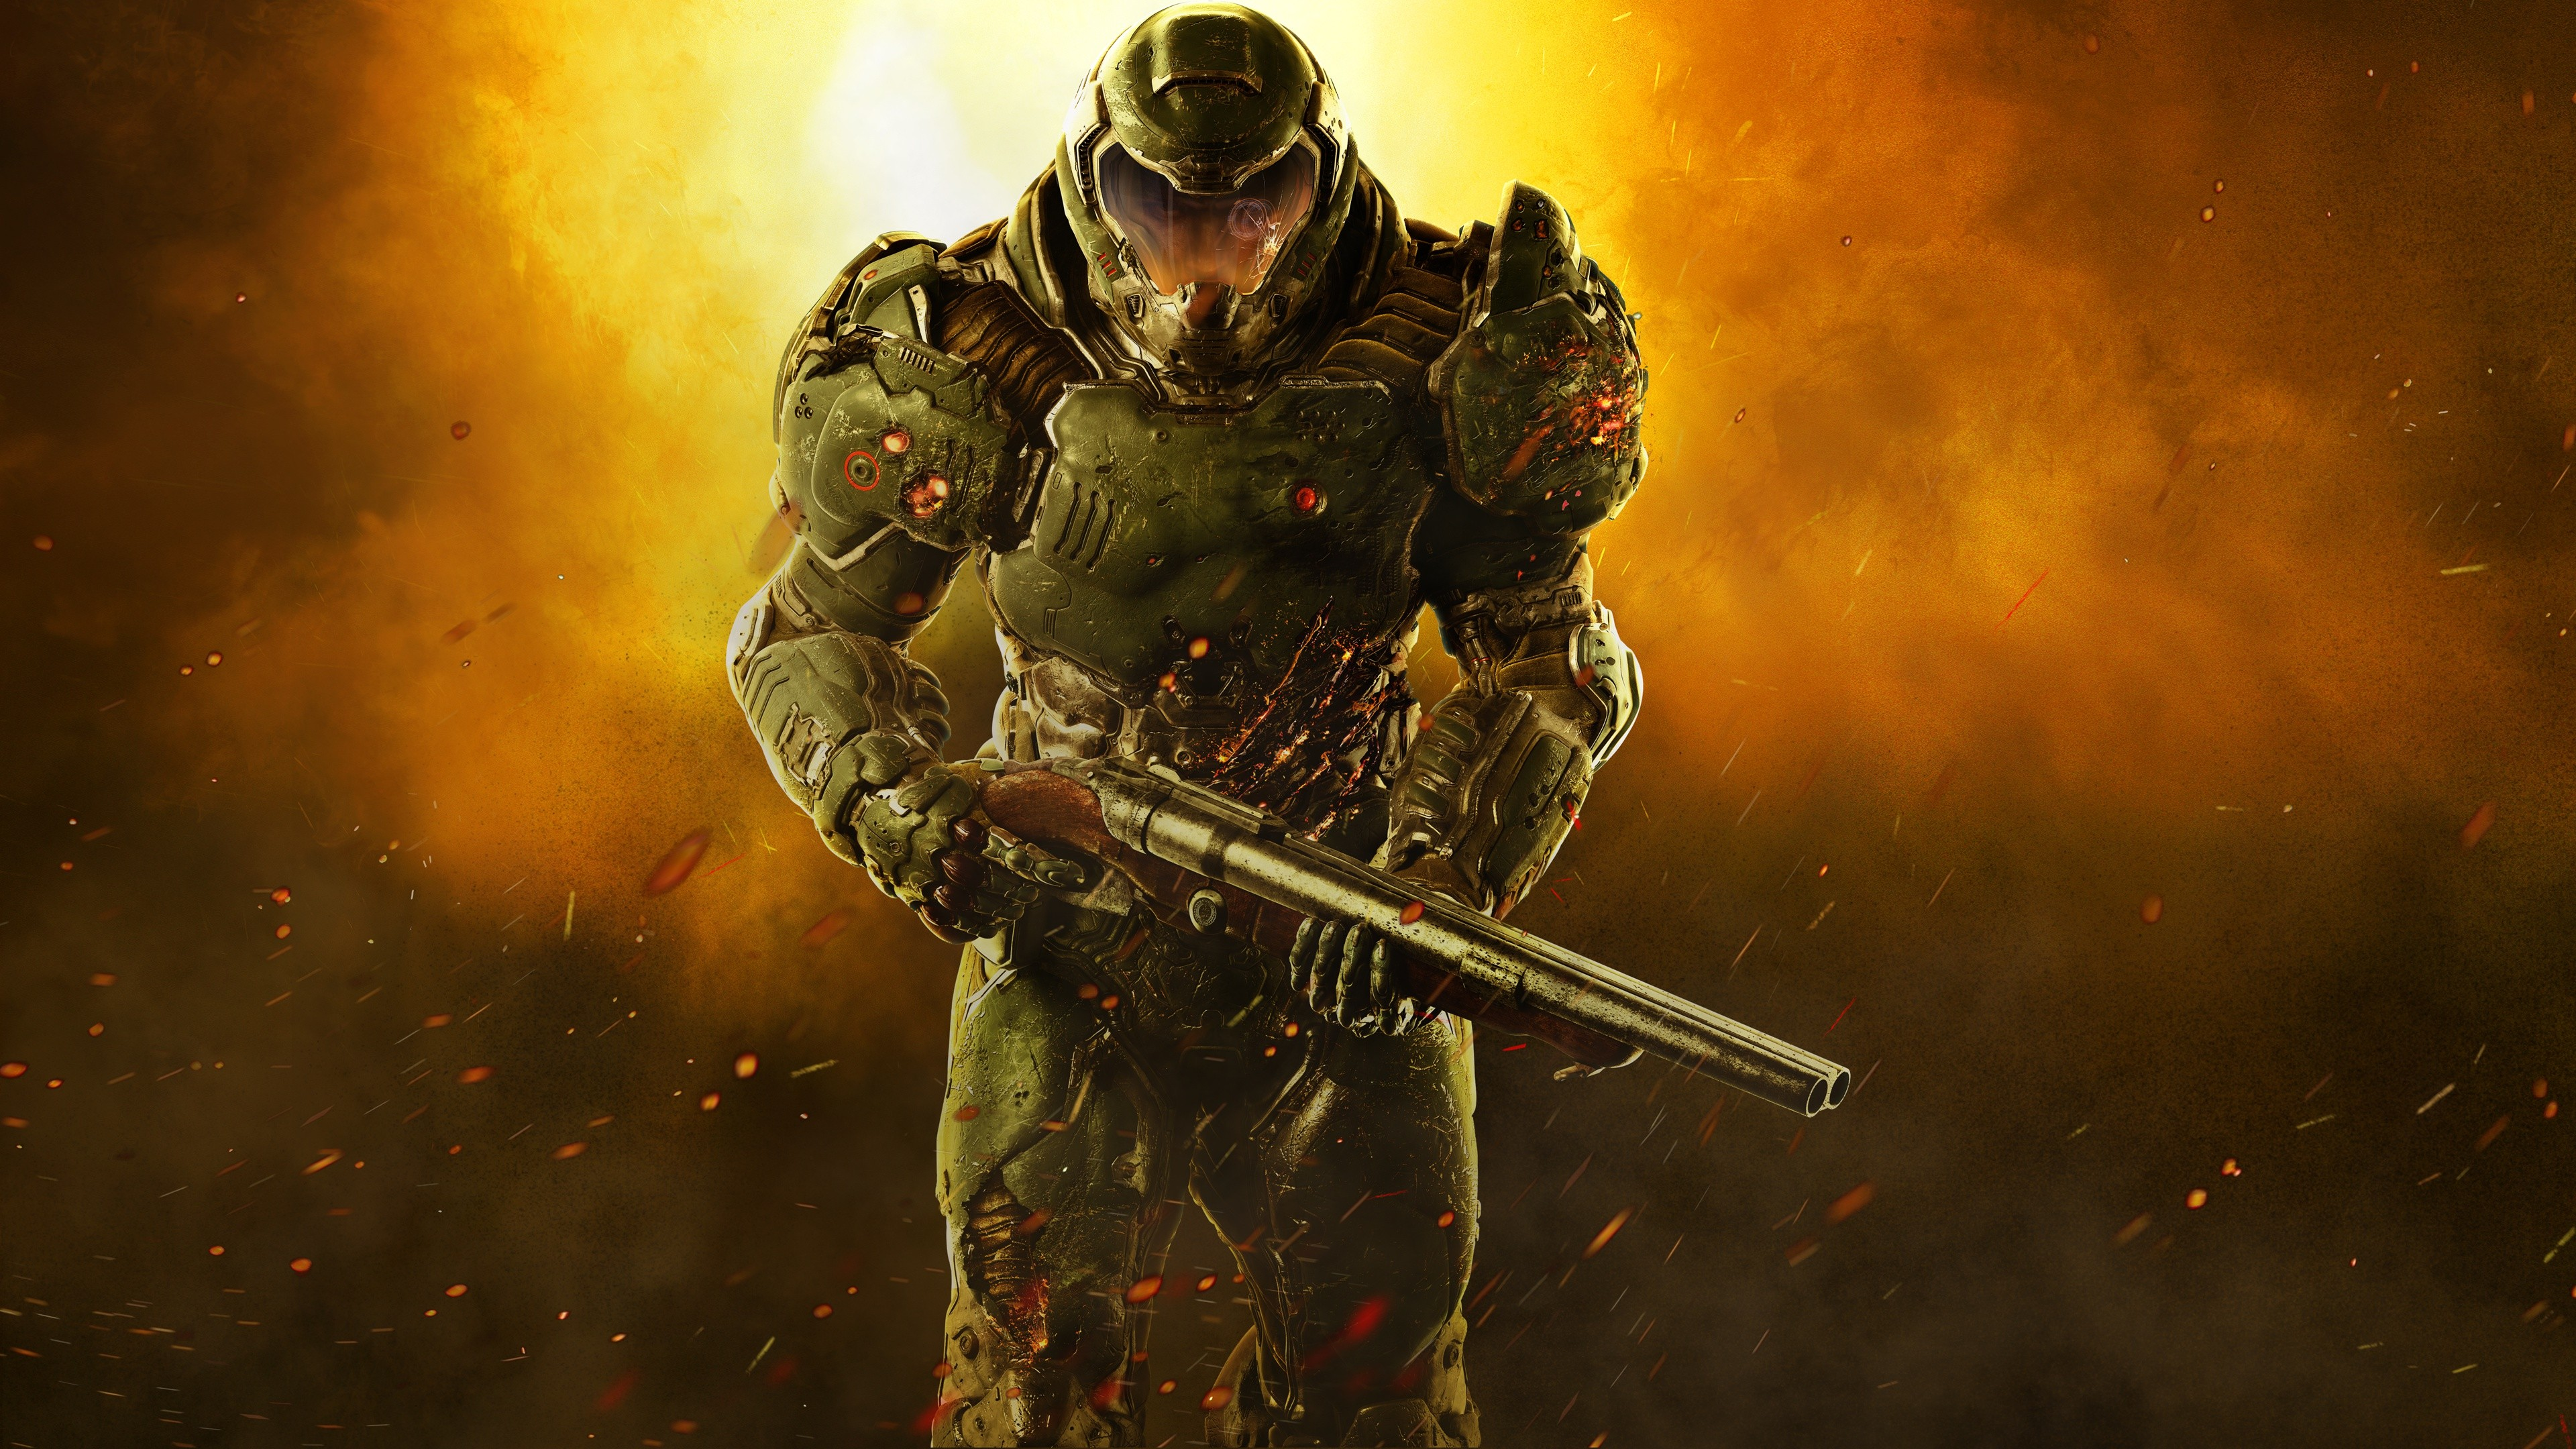 Doom (2016) Wallpapers, Pictures, Images